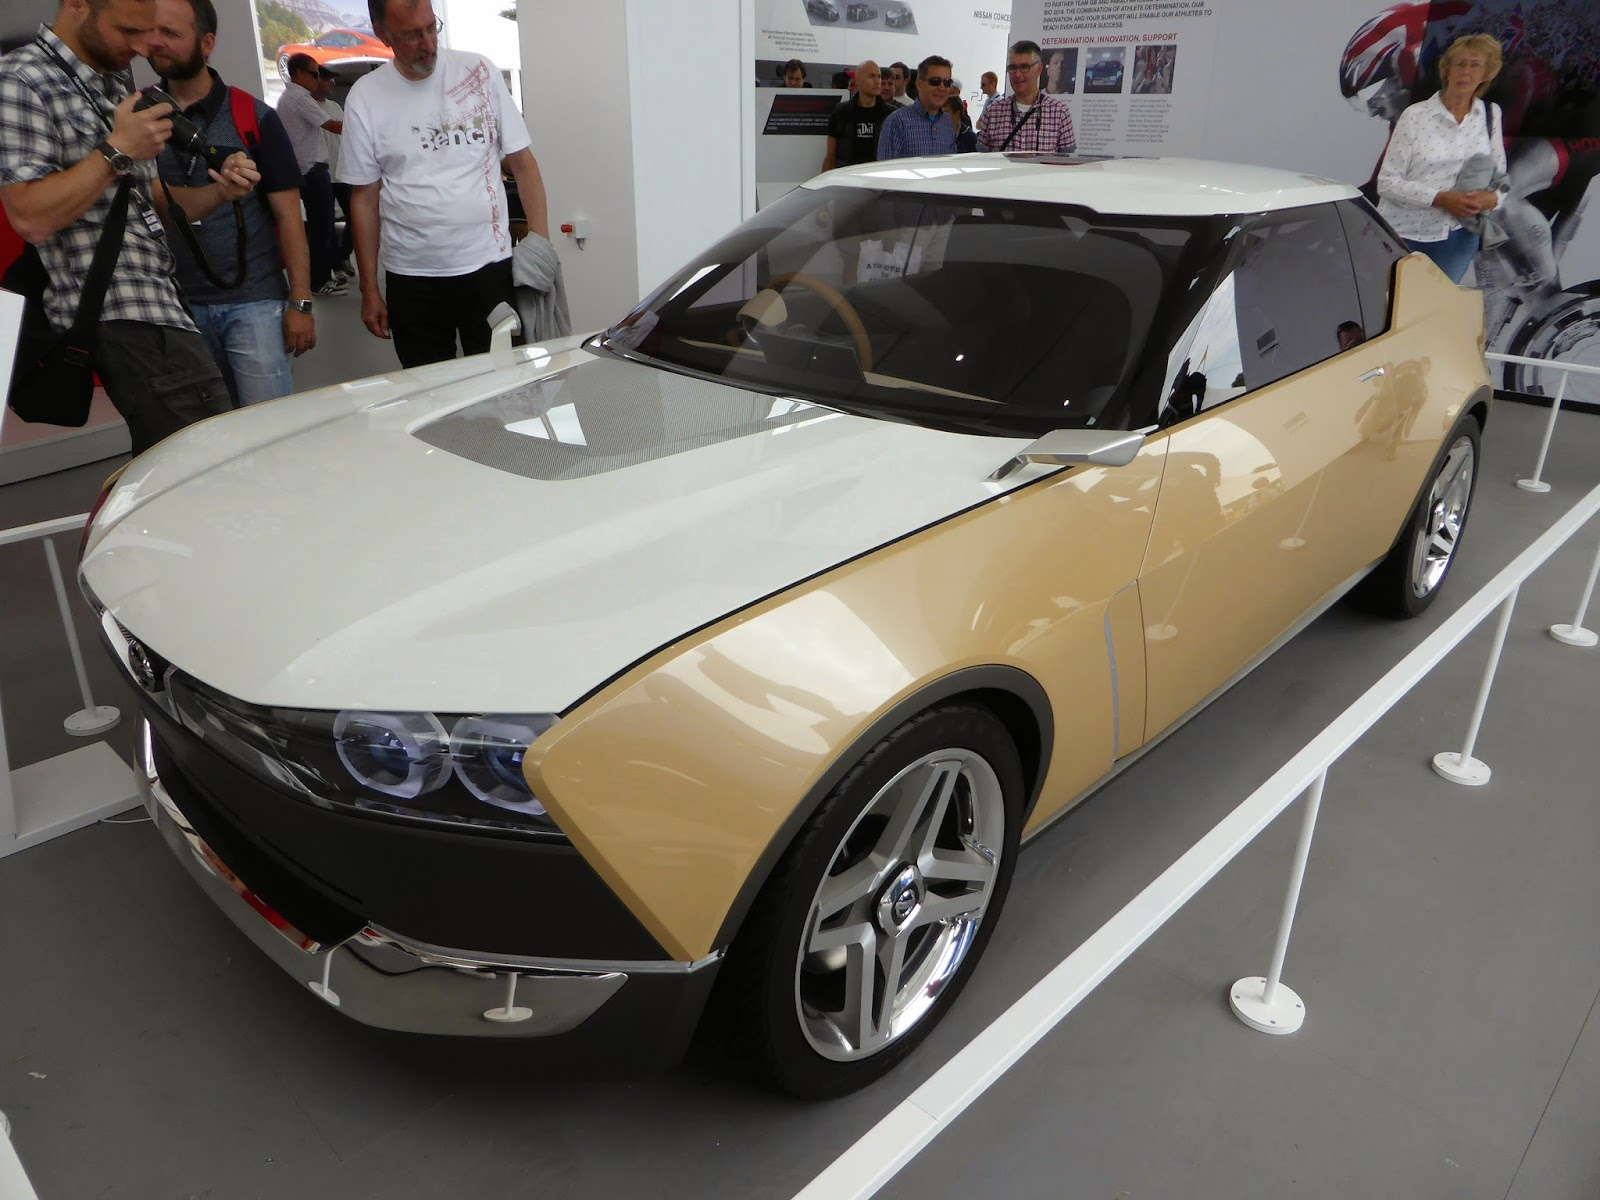 Nissan iDx Freeflow concept. Awesomely reto-modern